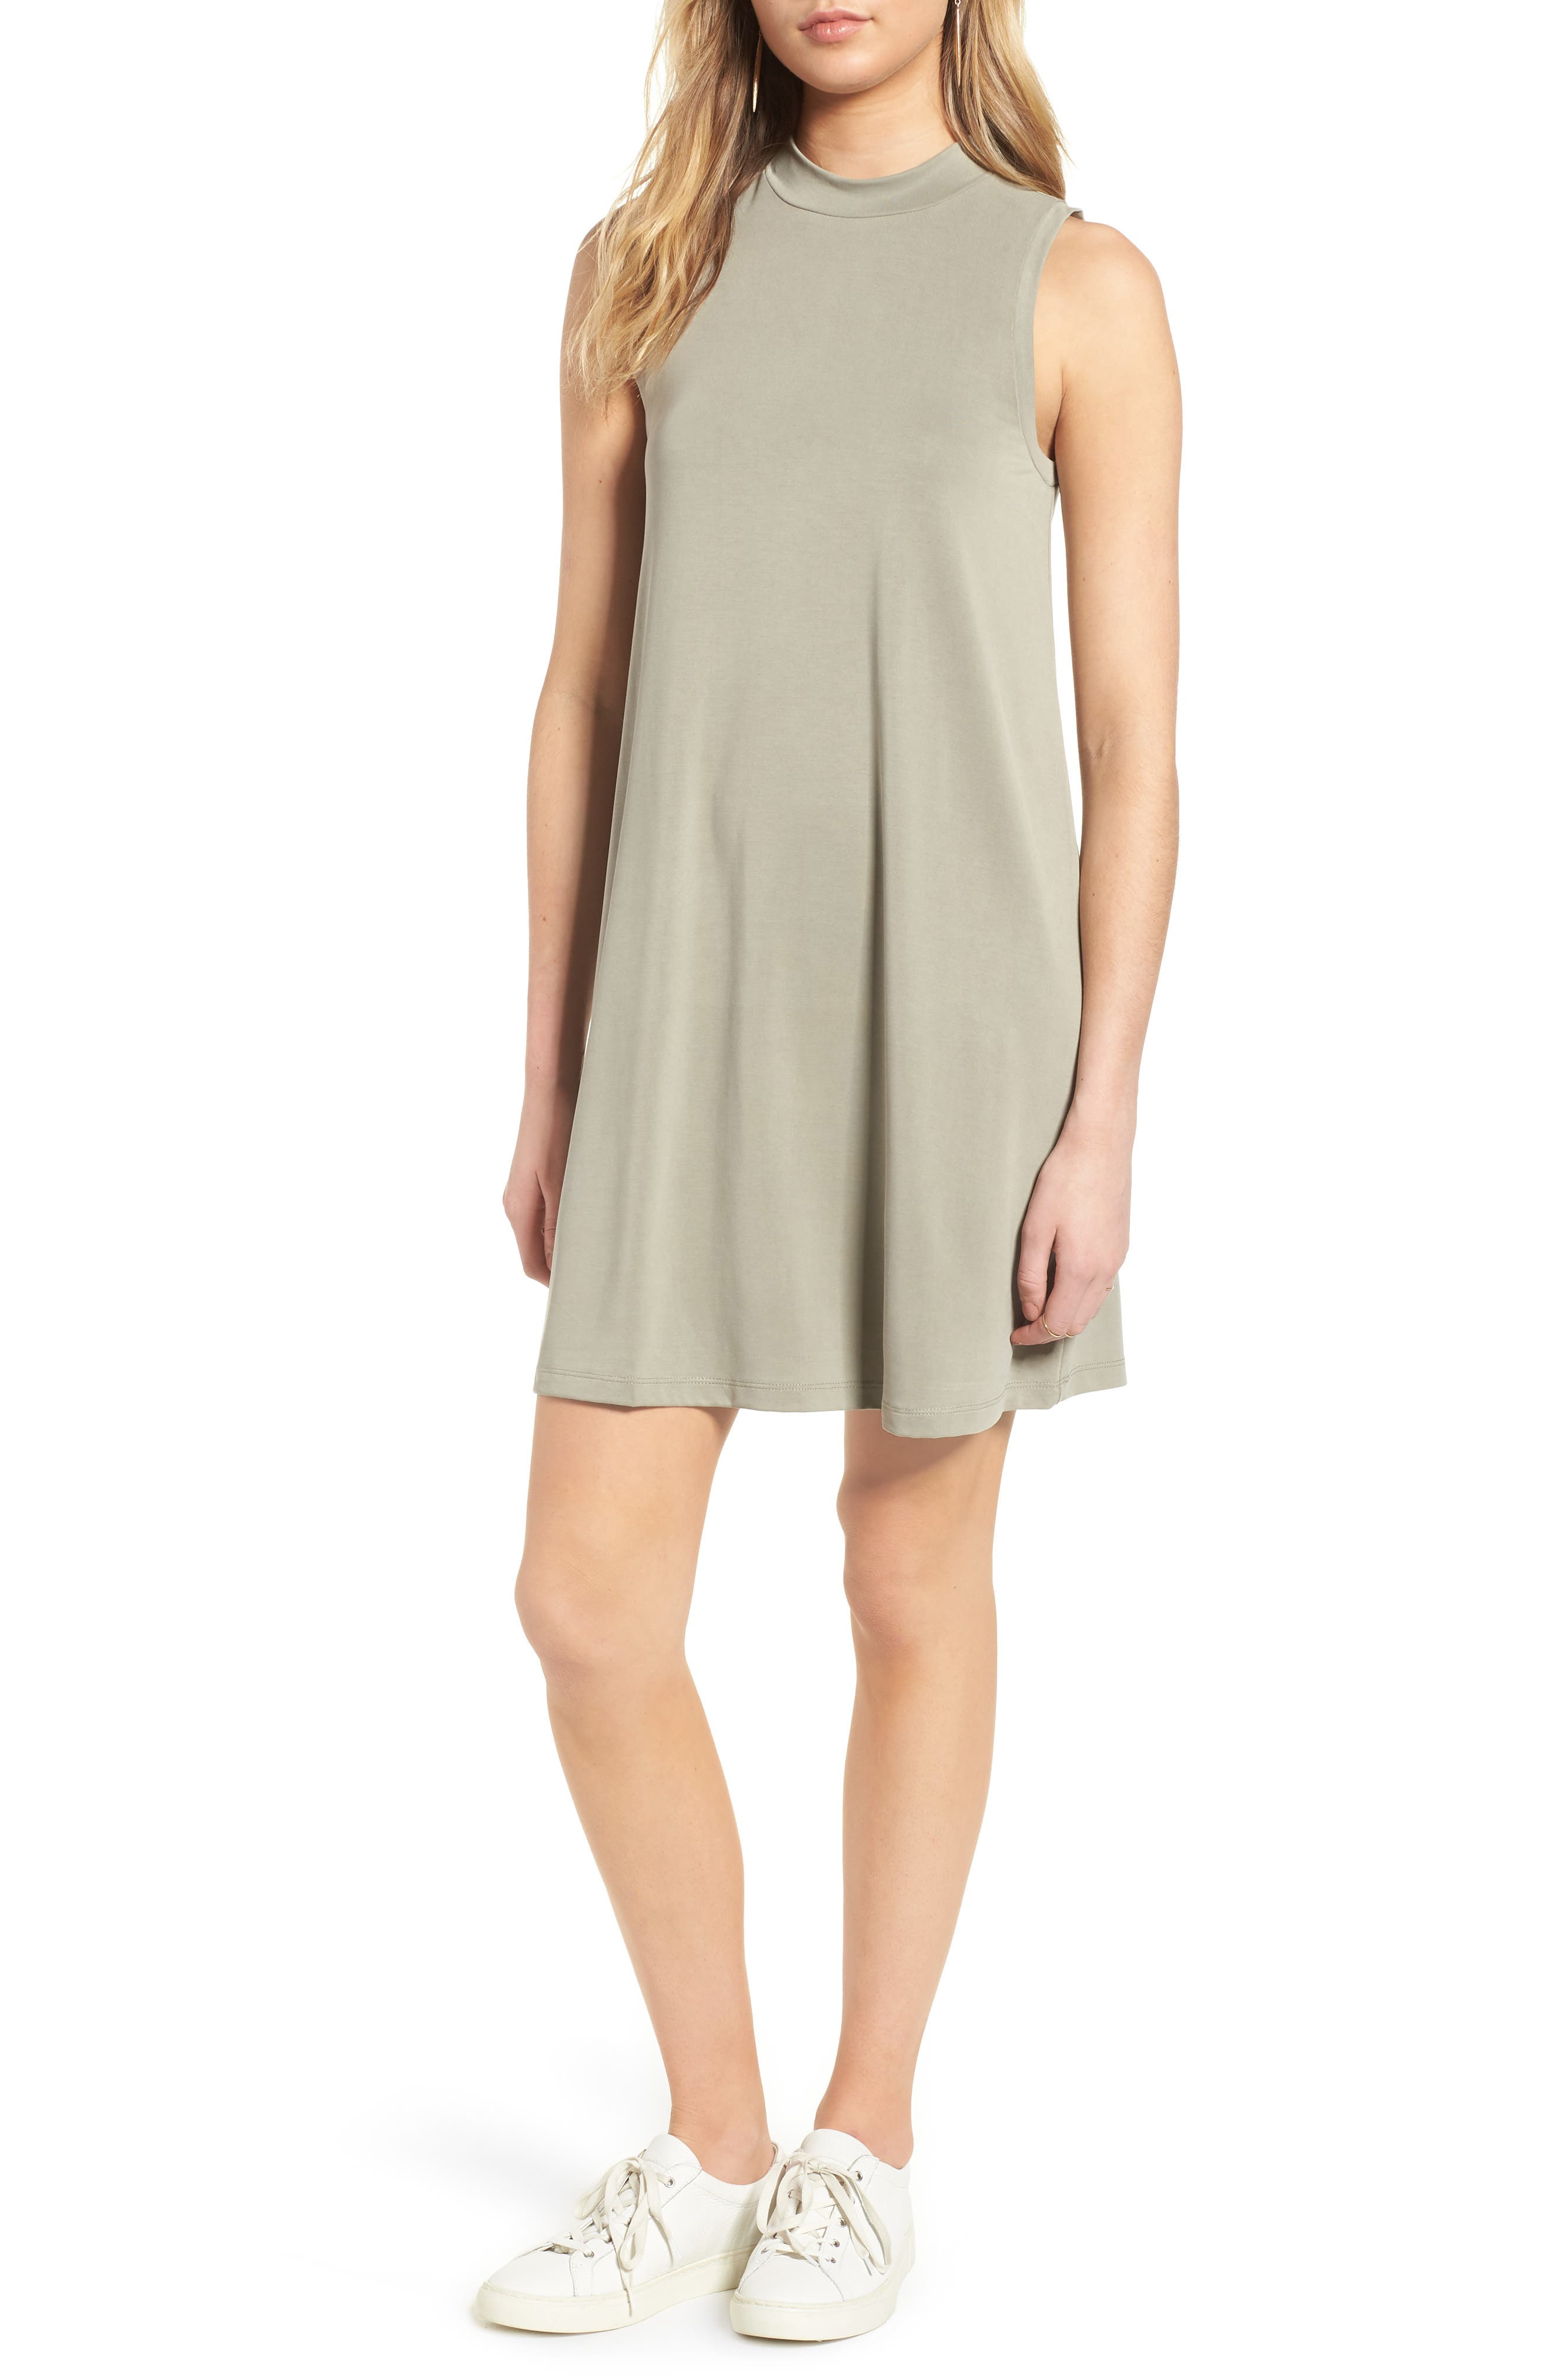 Madewell Sandwashed Mock Neck Tank Dress